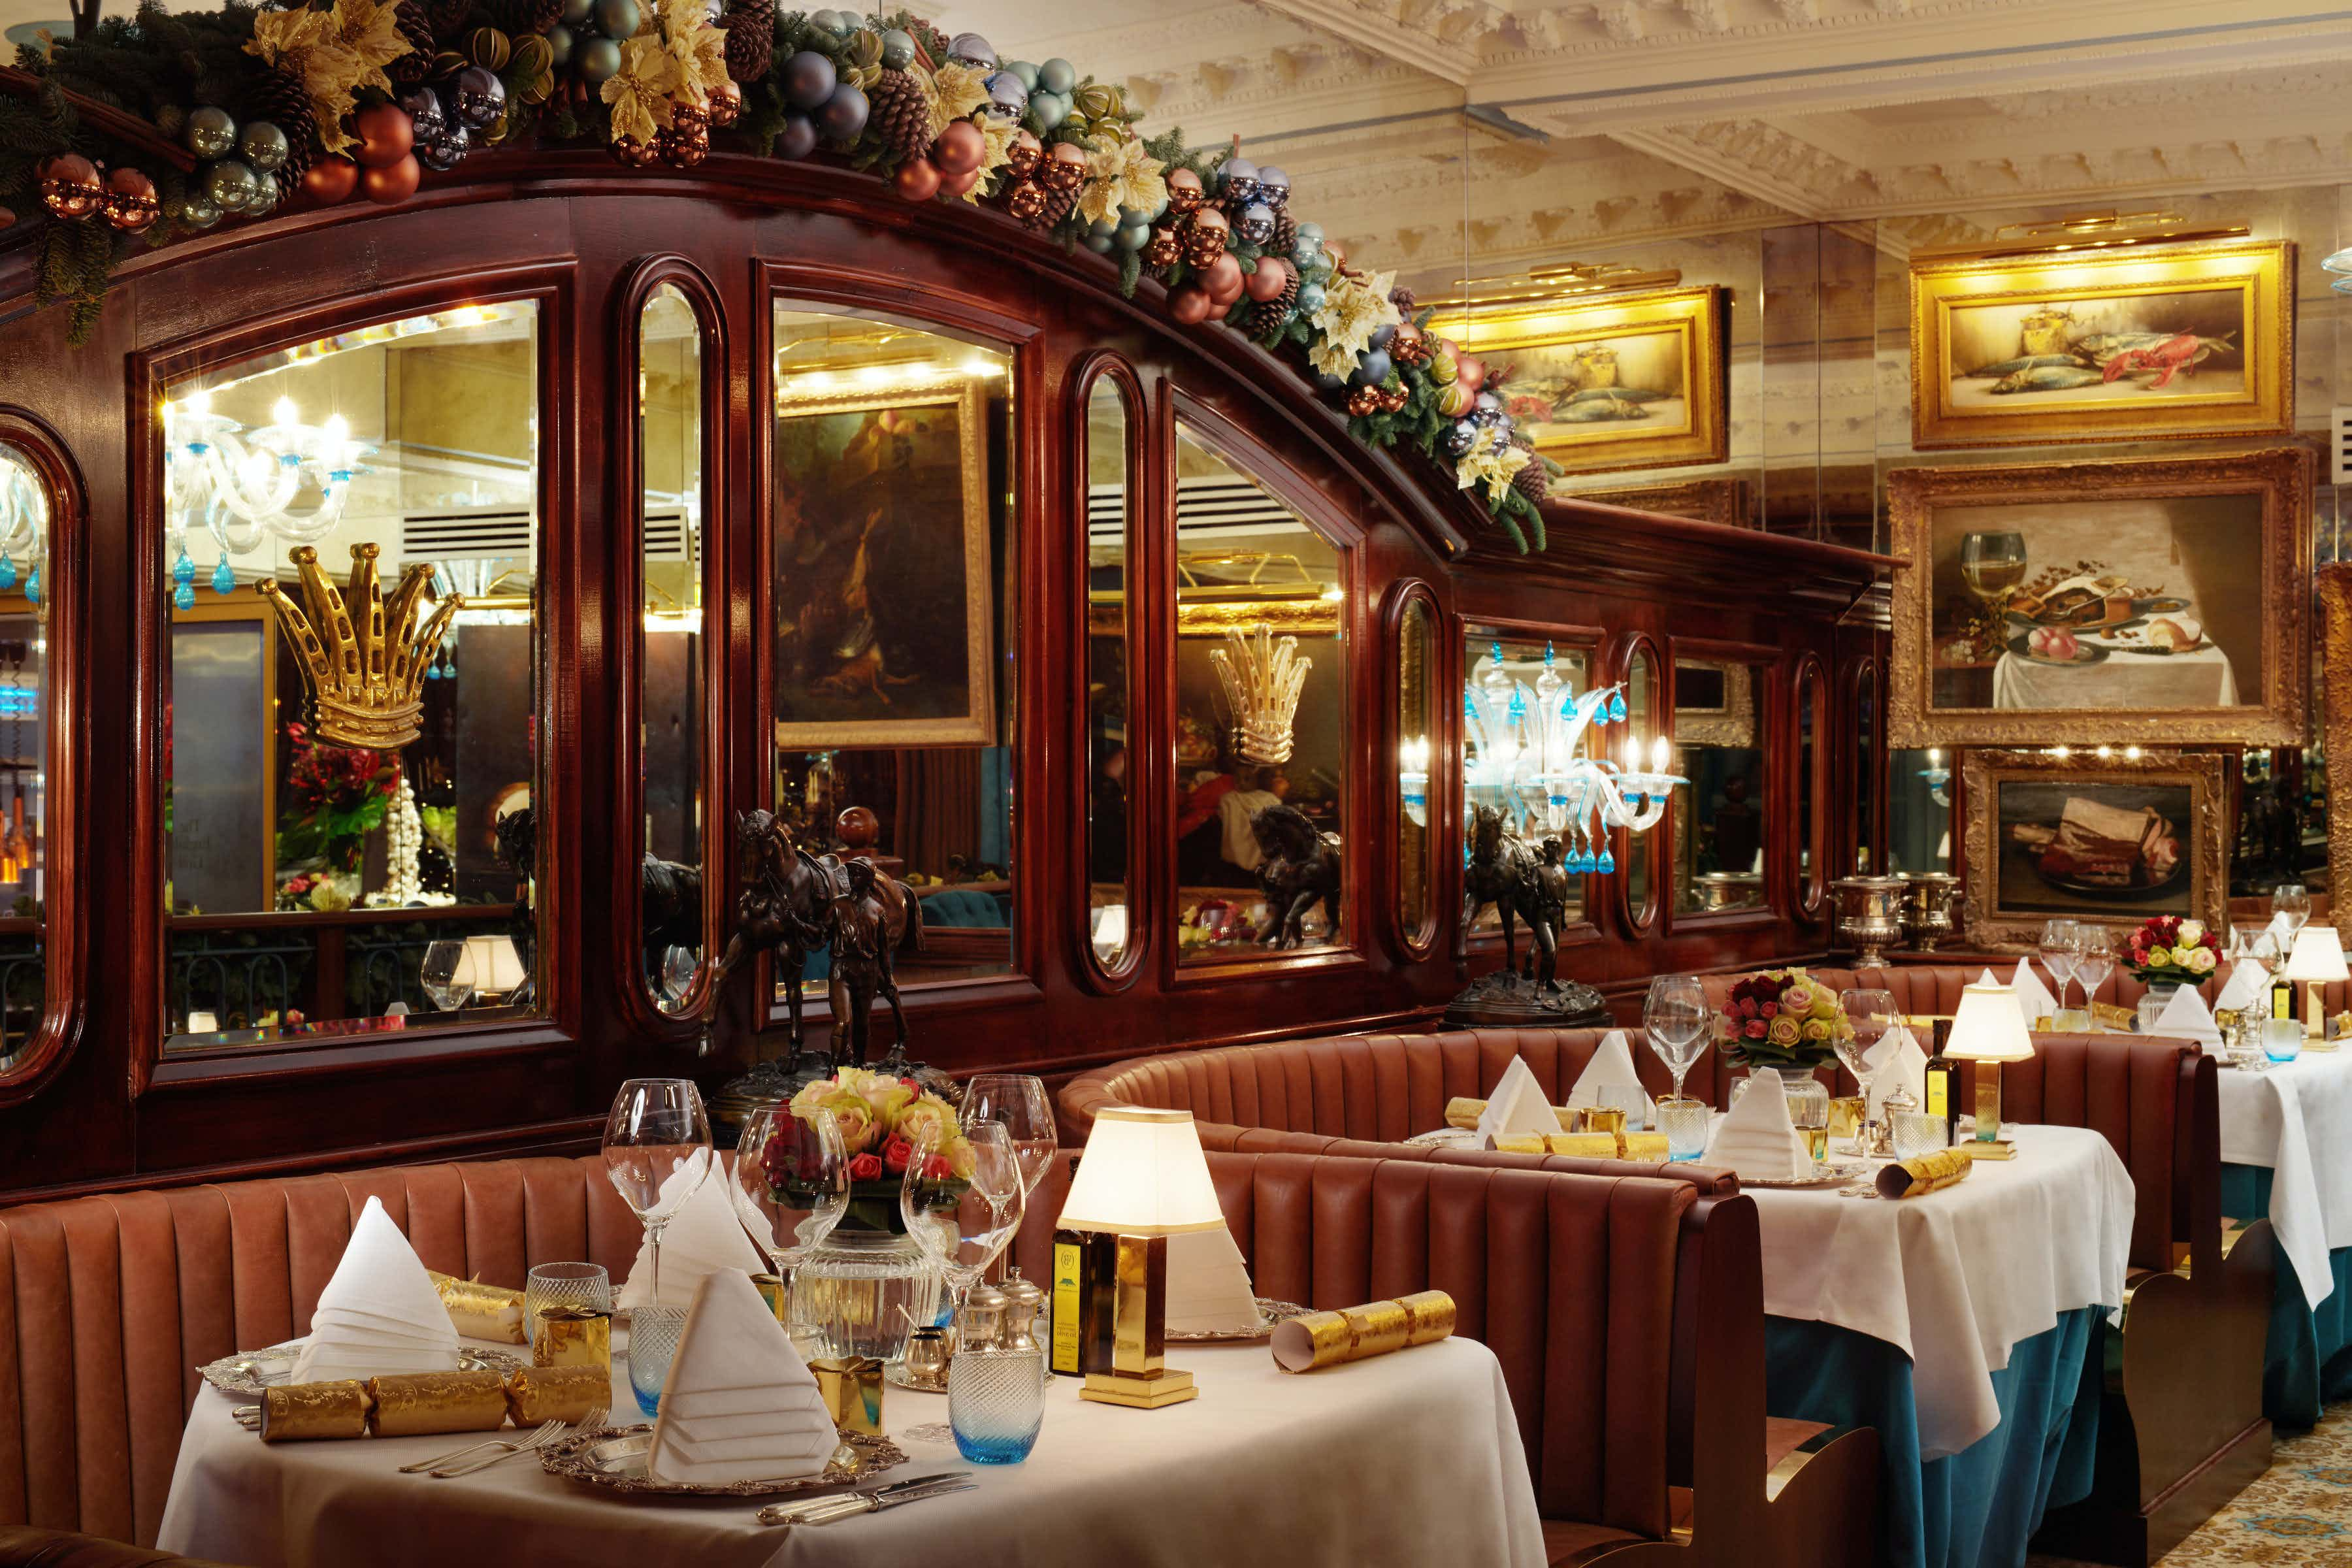 English Grill, The Rubens at the Palace Hotel